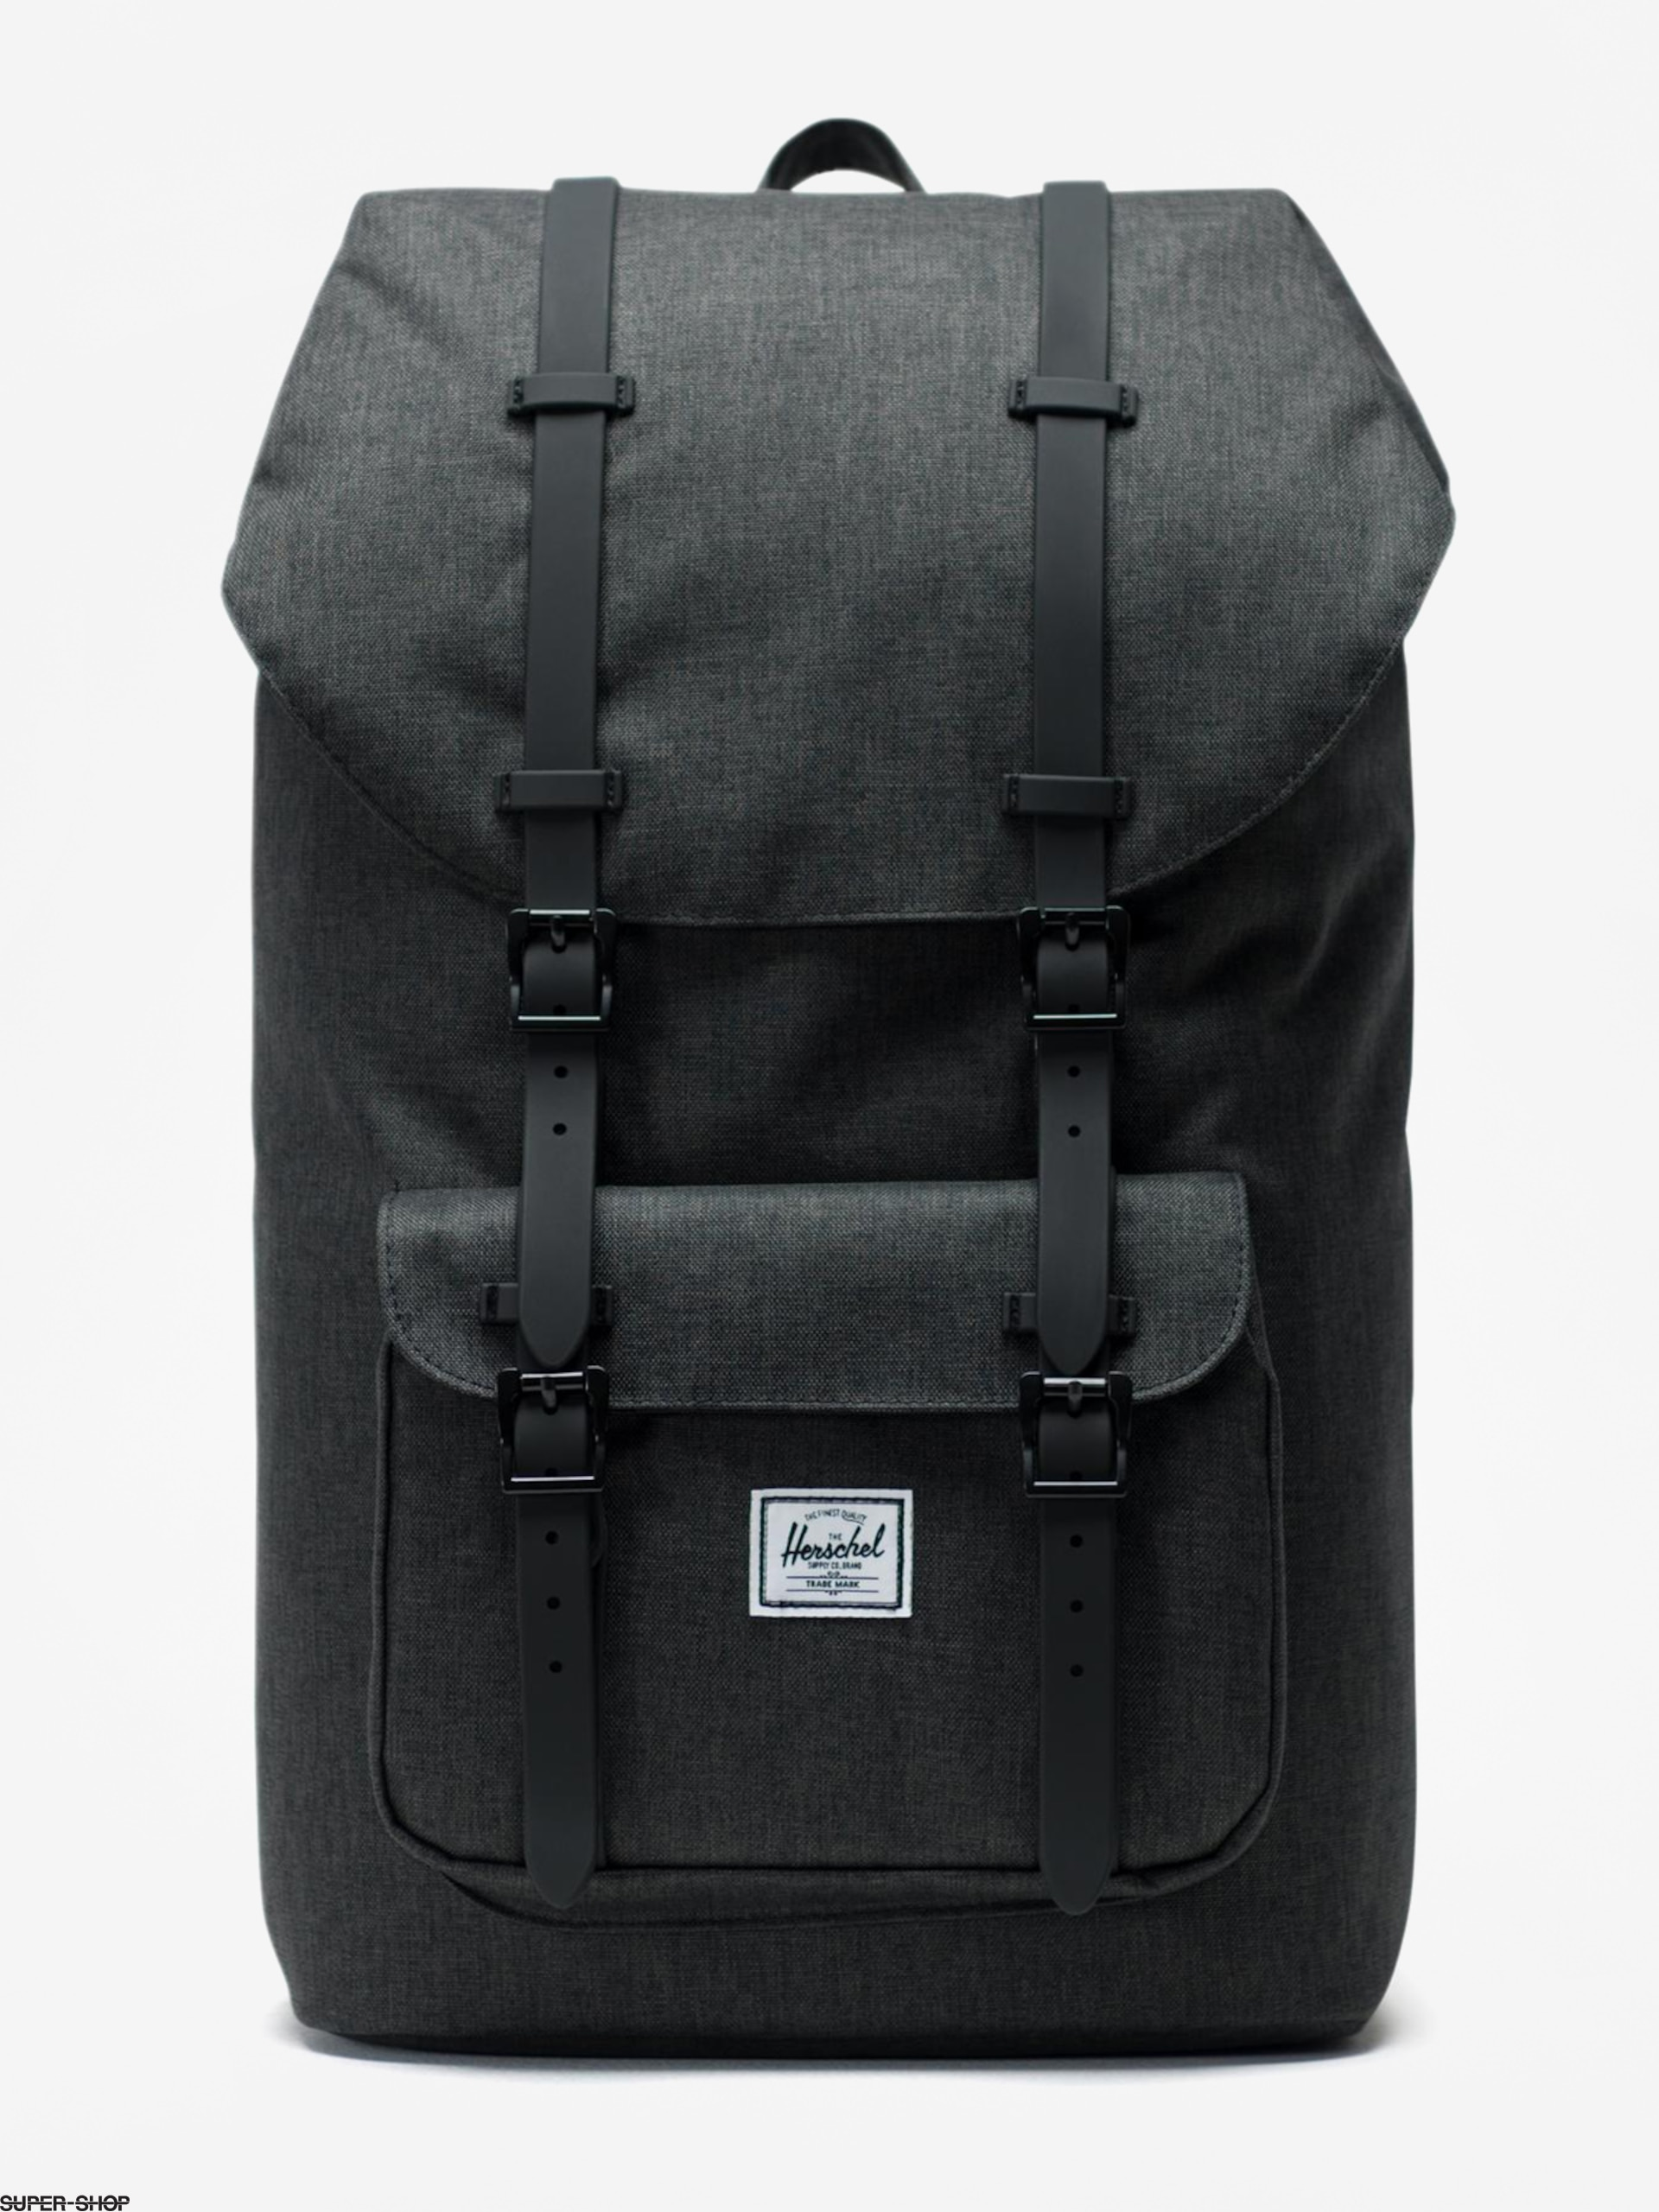 557f9b7cfc5 1021078-w1920-herschel-supply-co-little-america-backpack-black-crosshatch -black.jpg